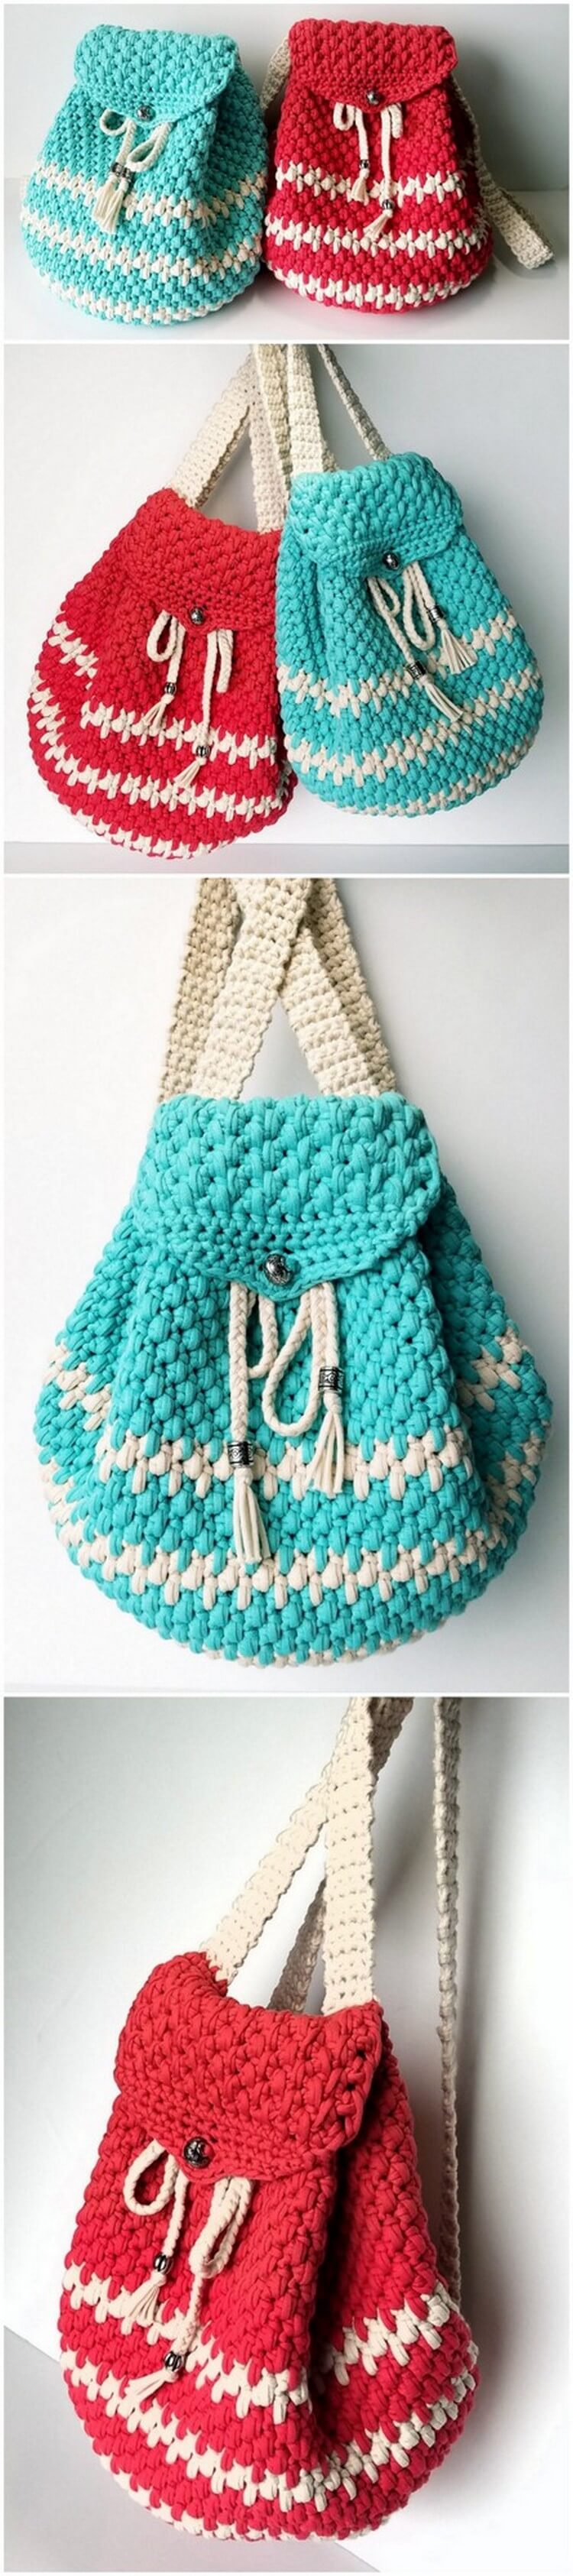 Crochet Backpack Pattern (28)